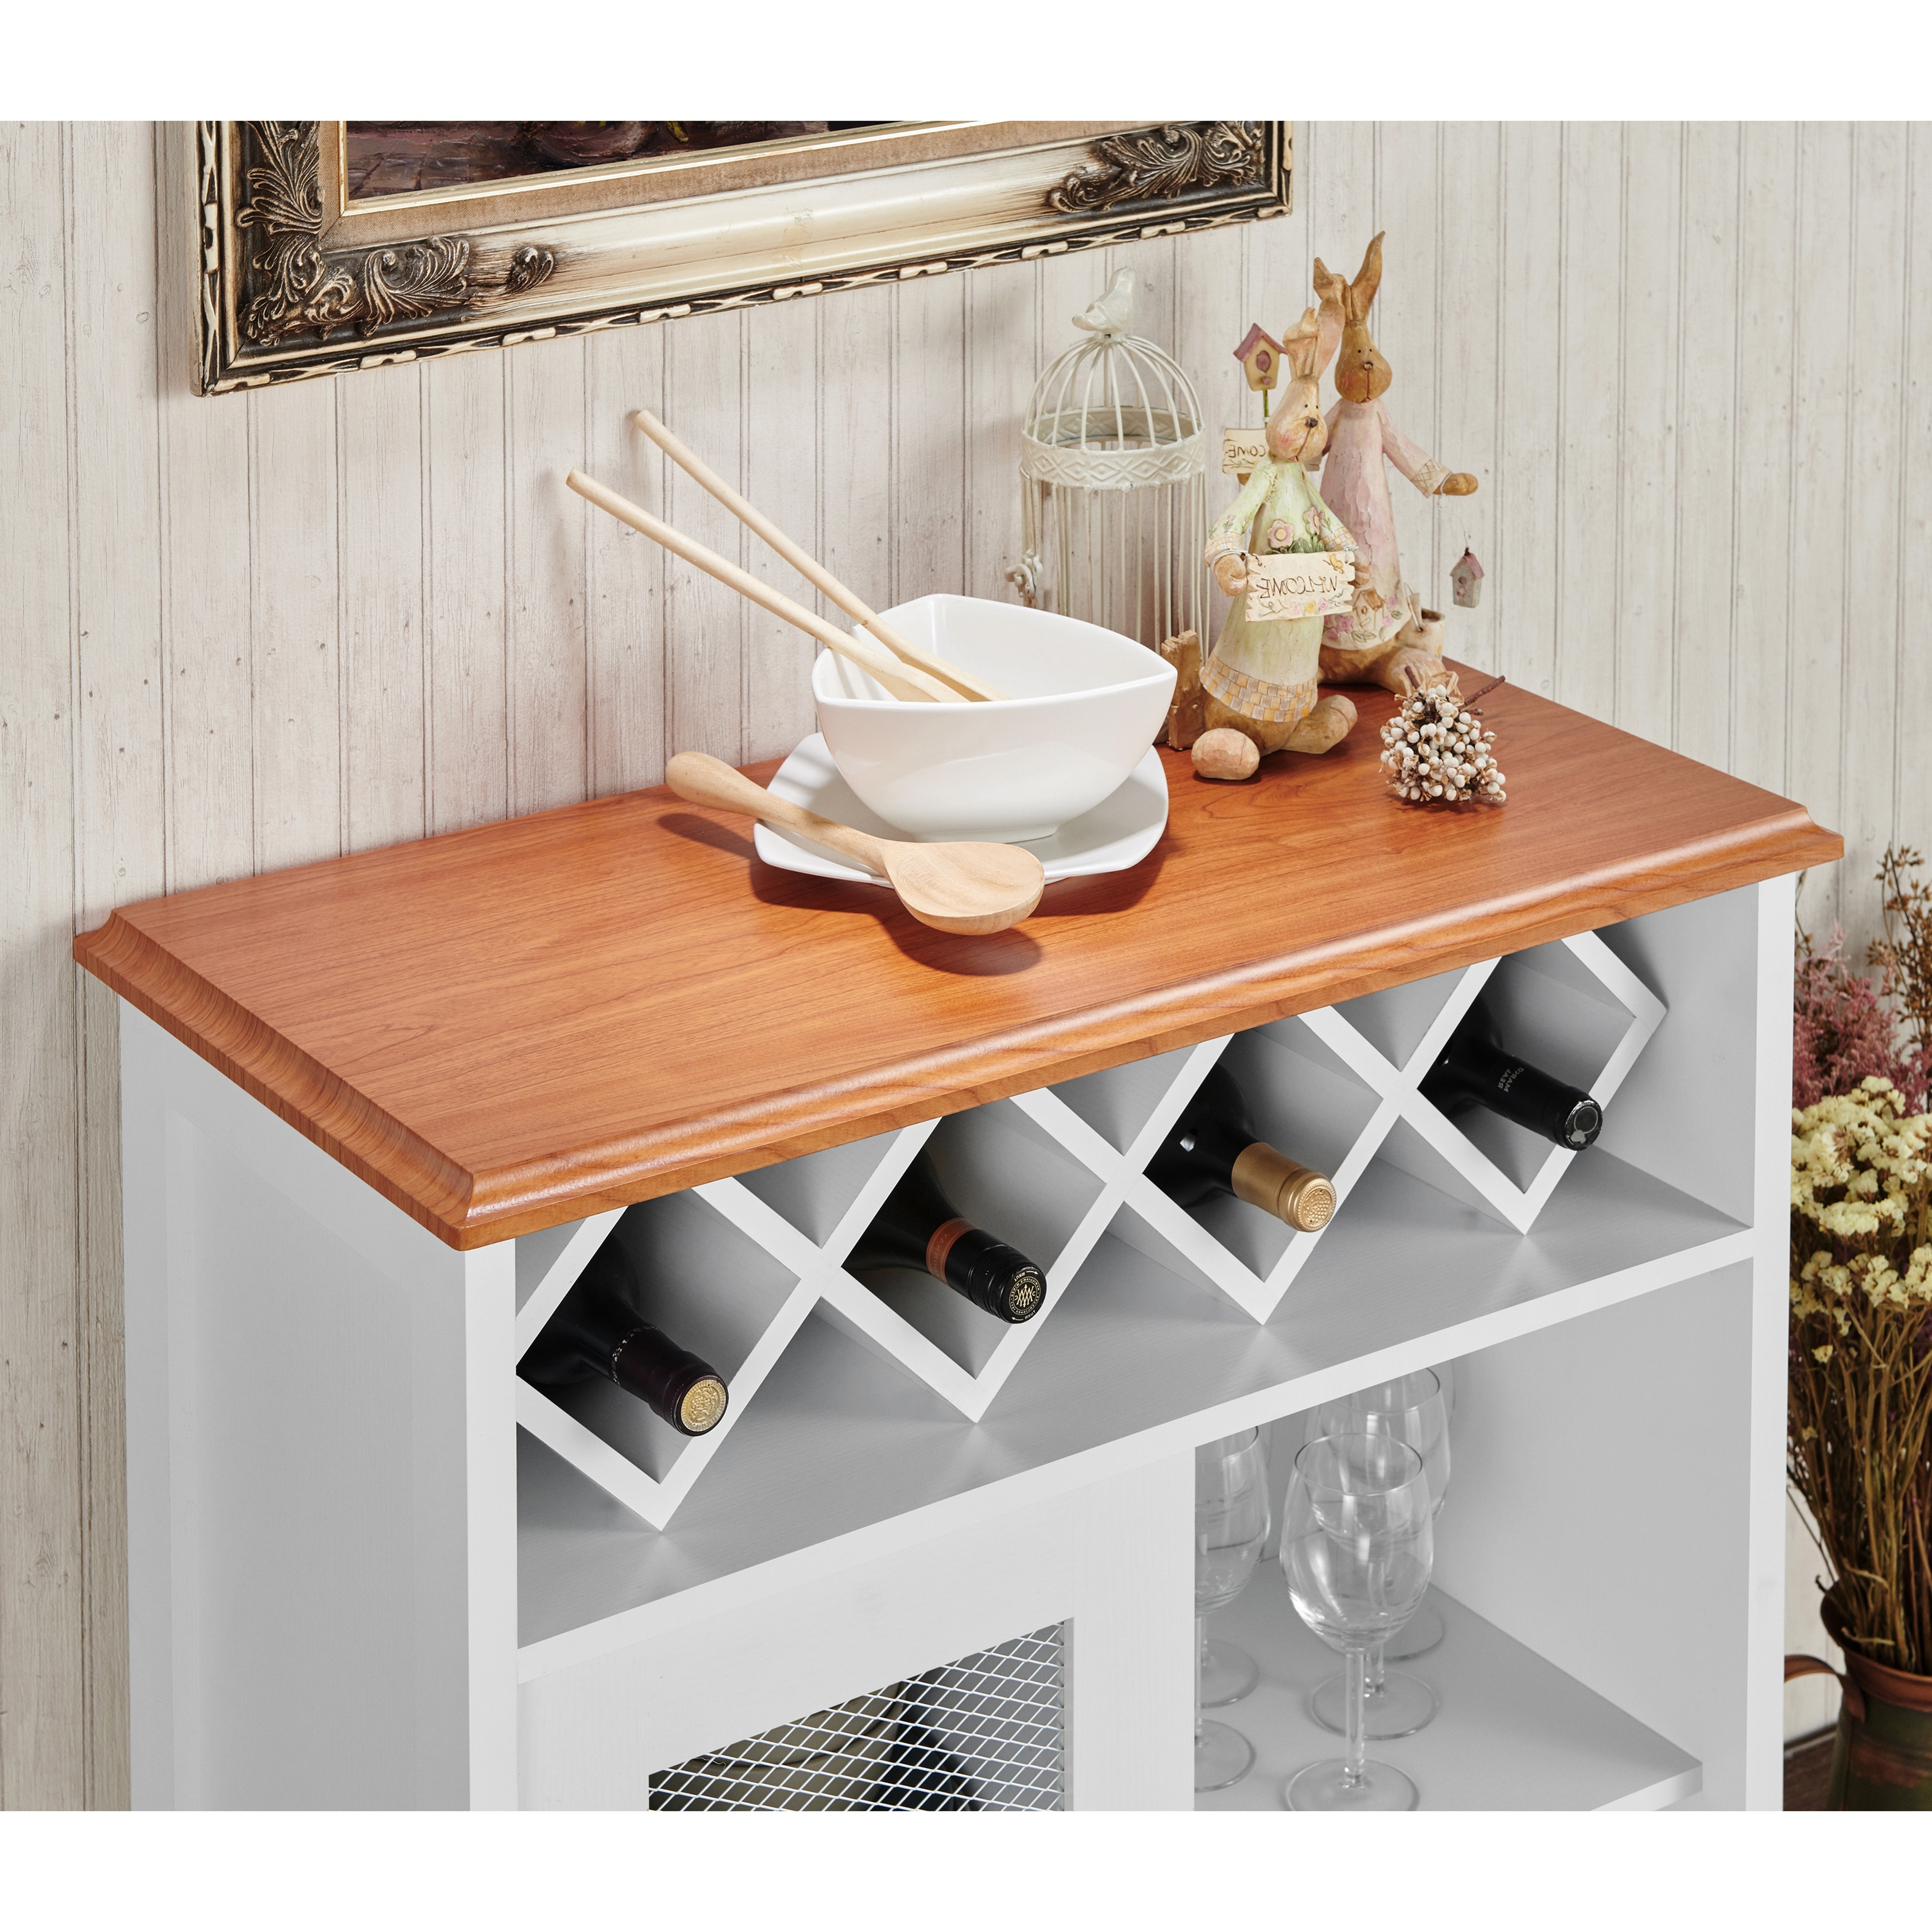 Furniture Of America Saucedo Rustic White Buffet With Wine Rack – N/a Throughout Saucedo Rustic White Buffets (View 5 of 20)